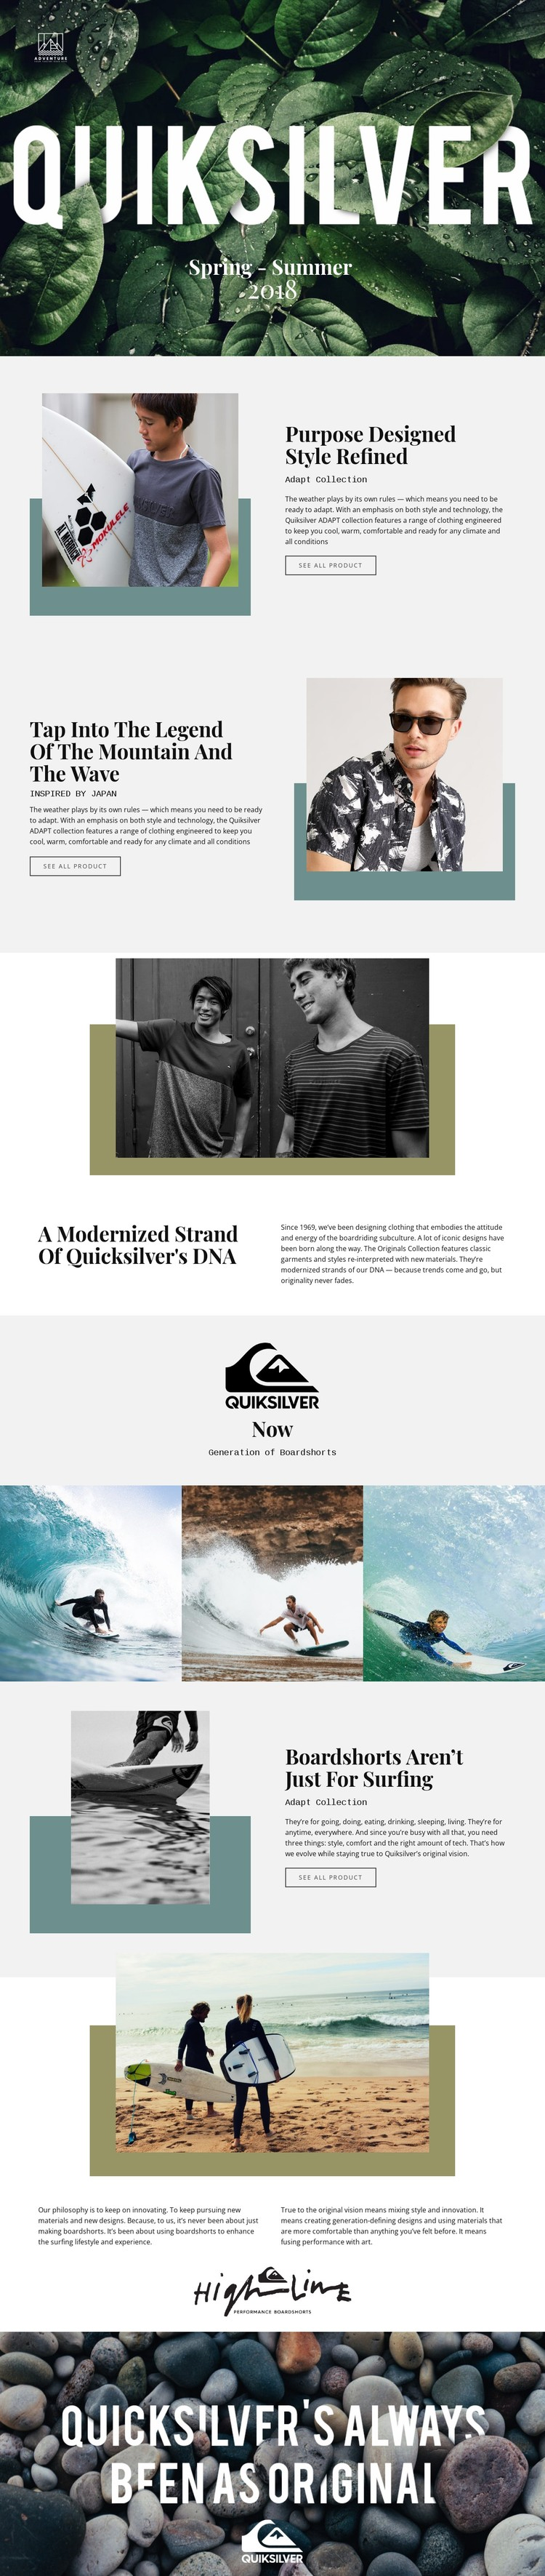 Quiksilver CSS Template